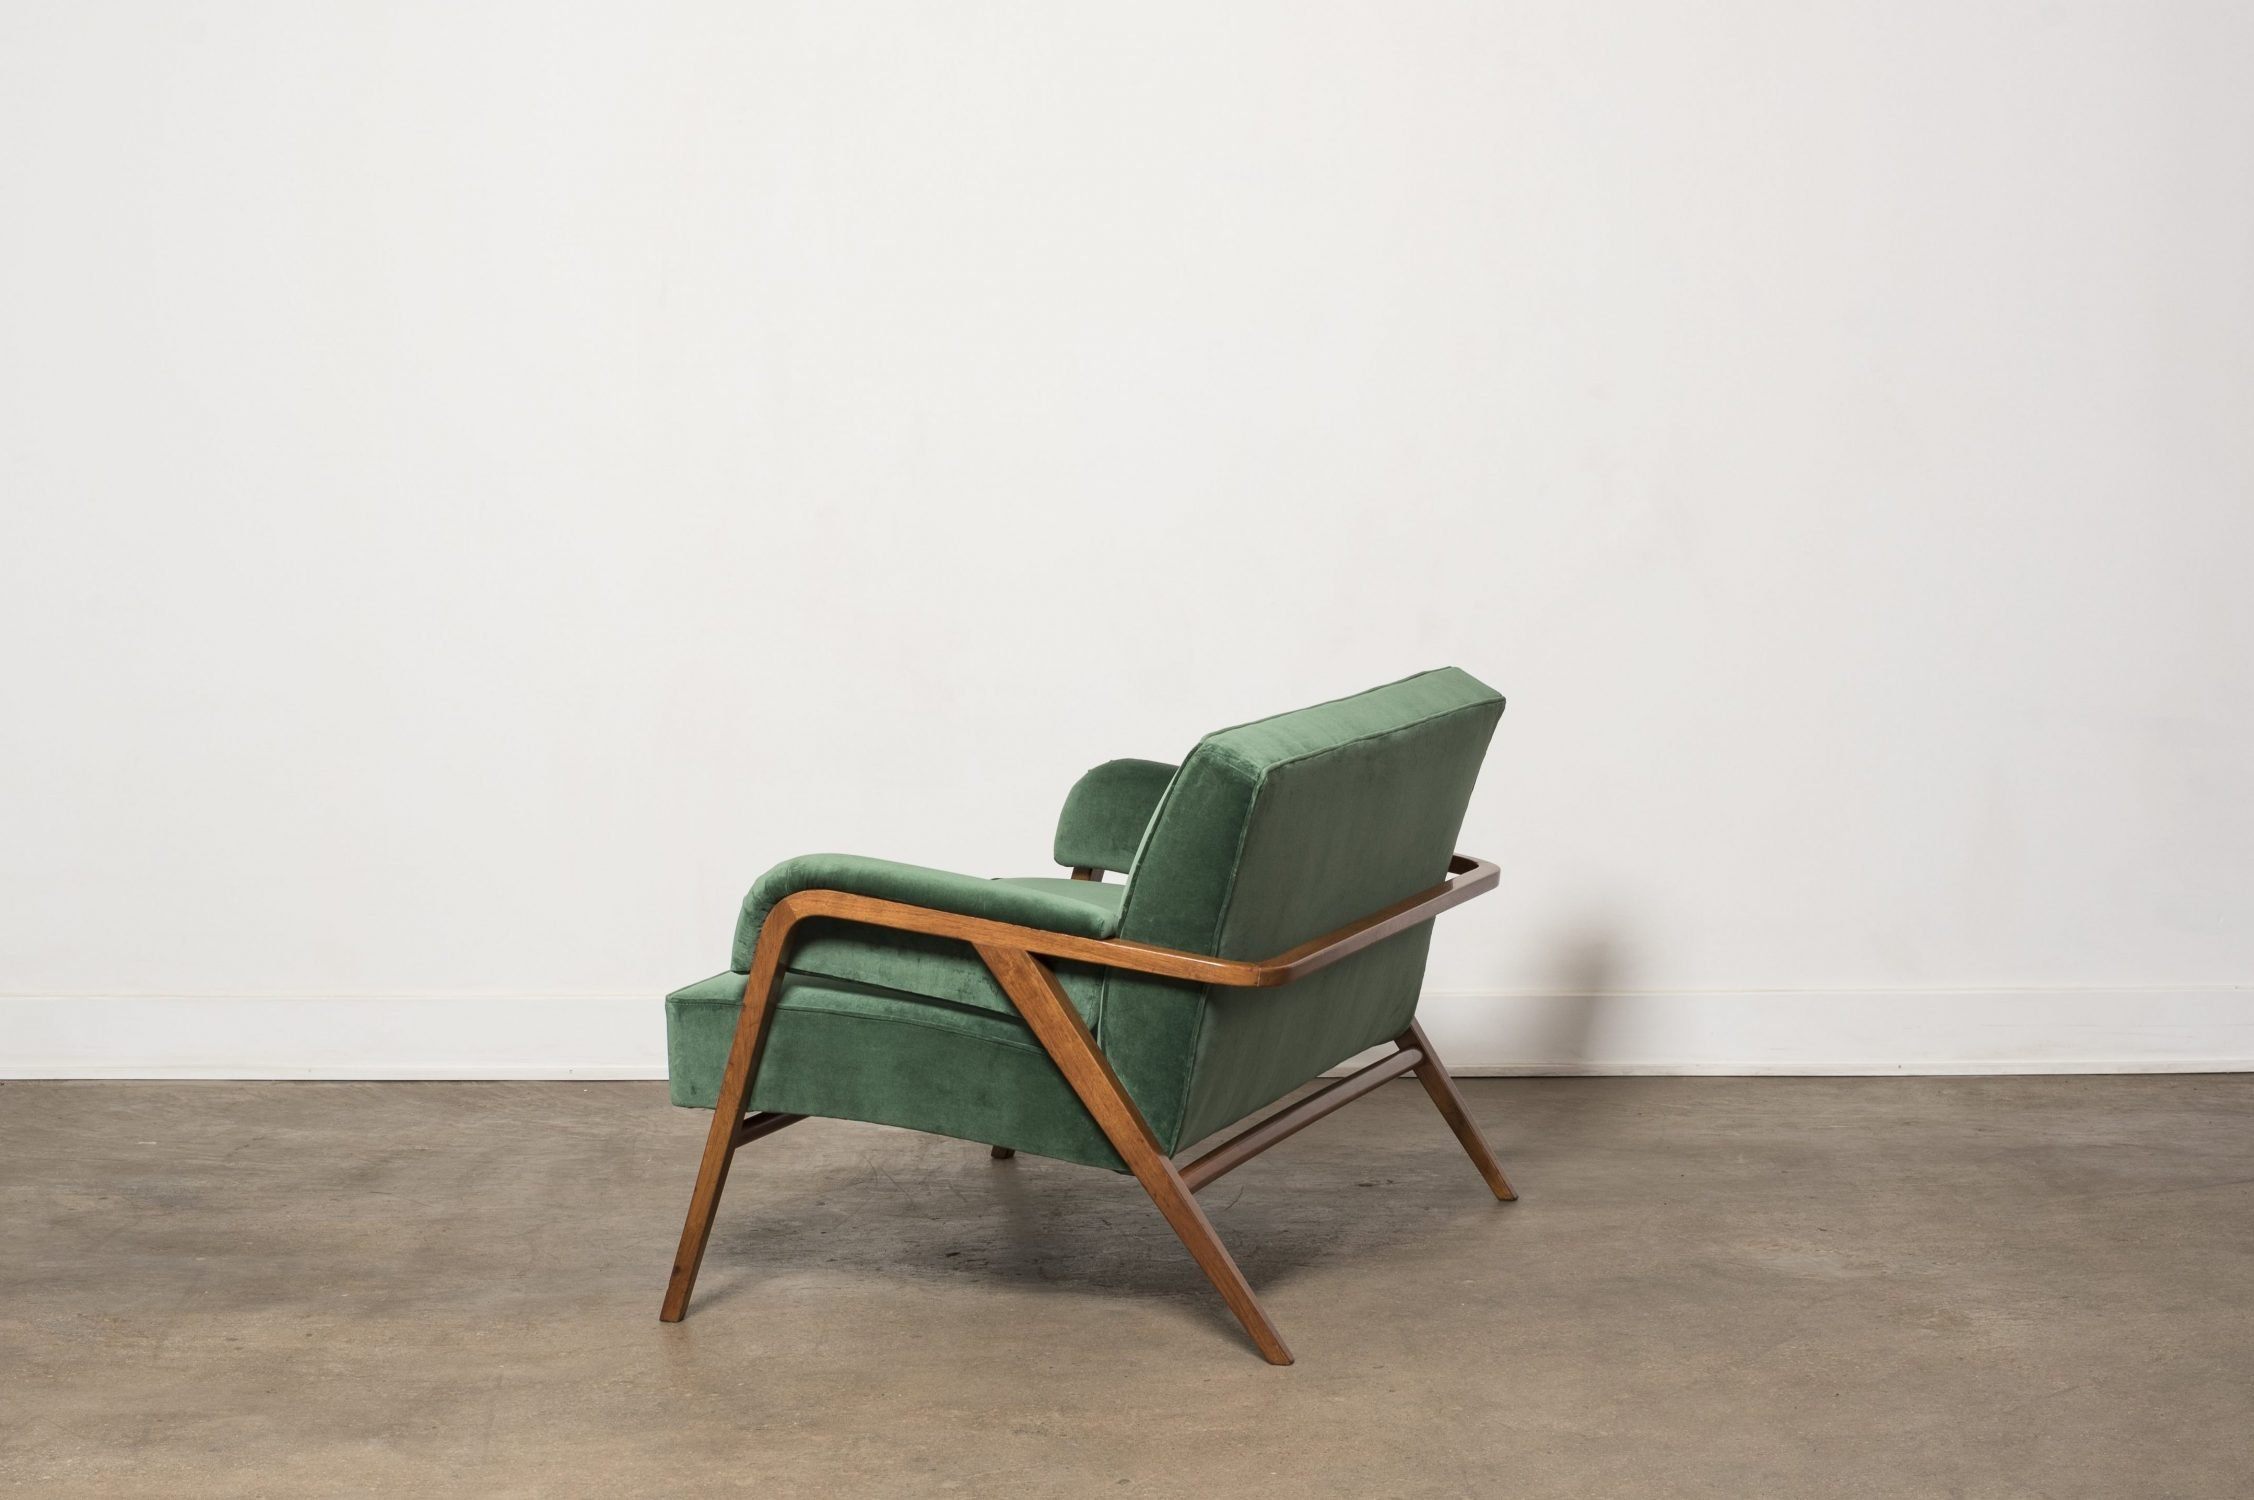 Franco Albini |  Loveseat for Casa Carati in Milan